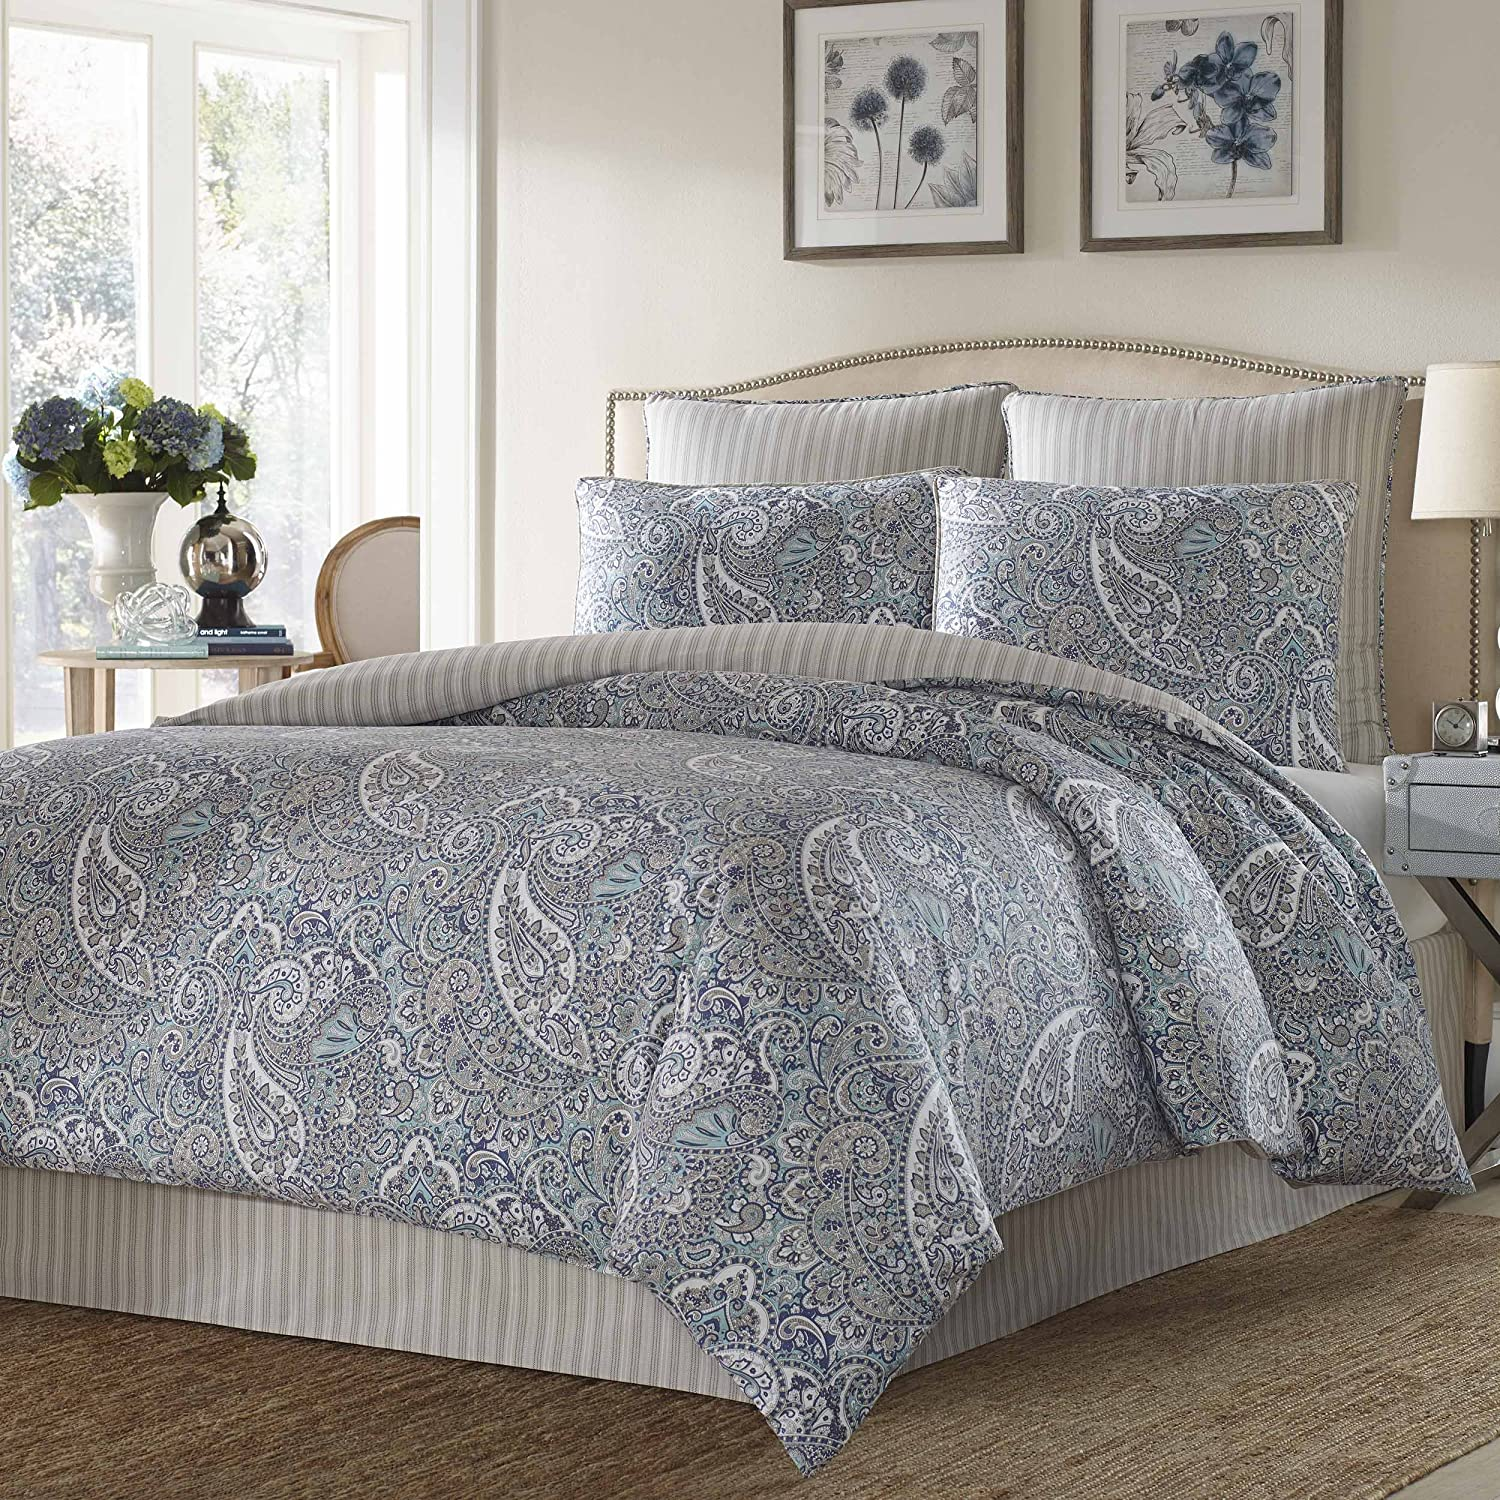 paisley india intl king paisleys covers hand cotton cover online embroidered duvet pure white dsc on grey size